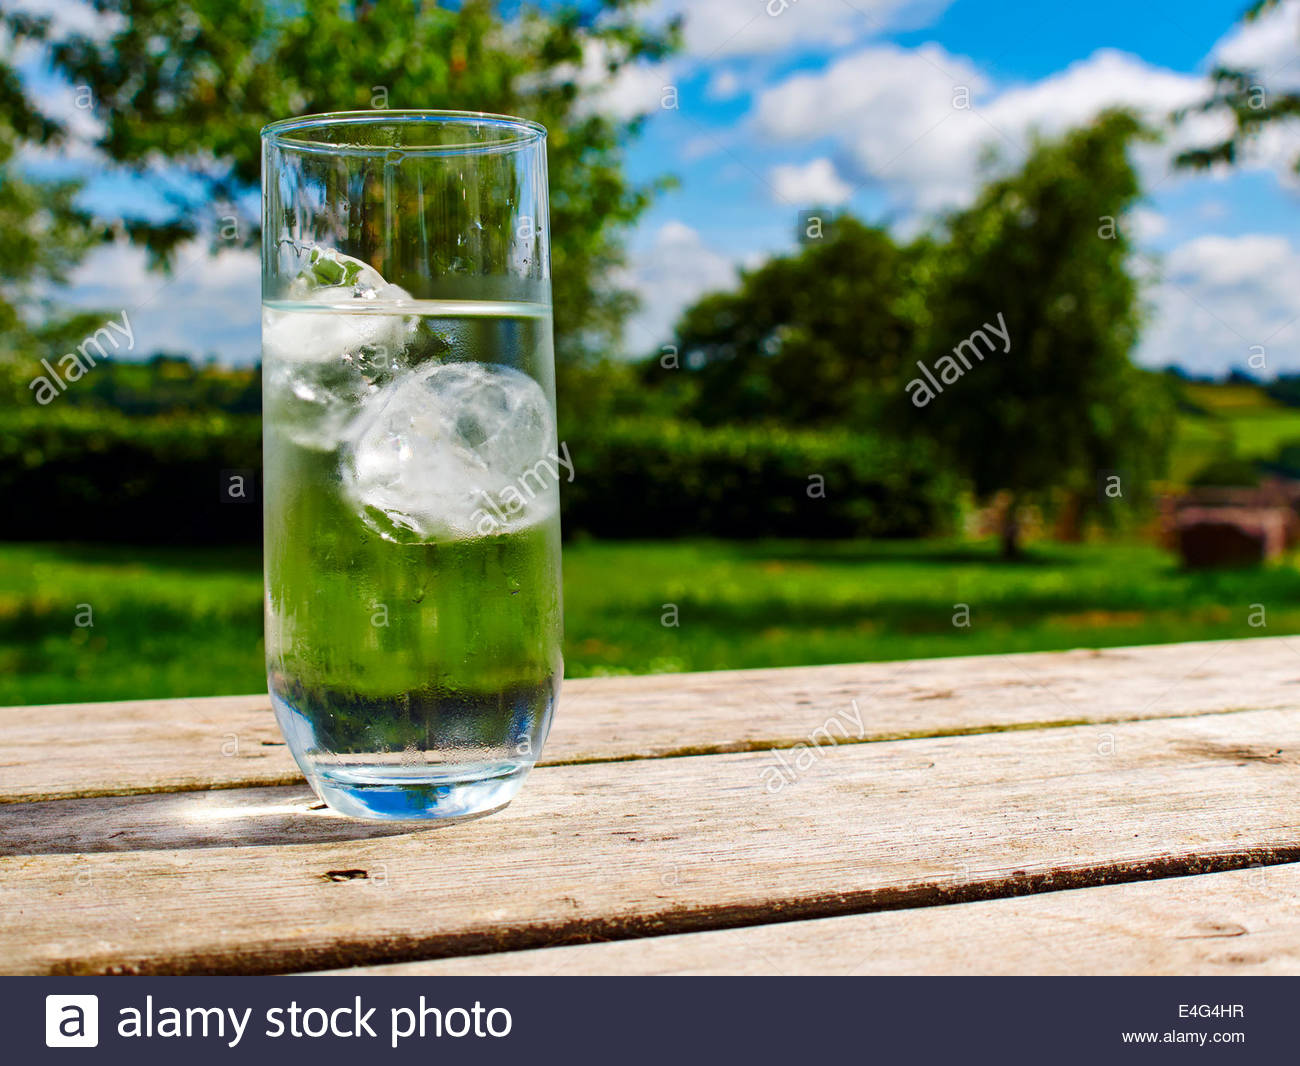 ice cold drink glass water on a wooden table outside in the sunshine in a garden Stock Photo